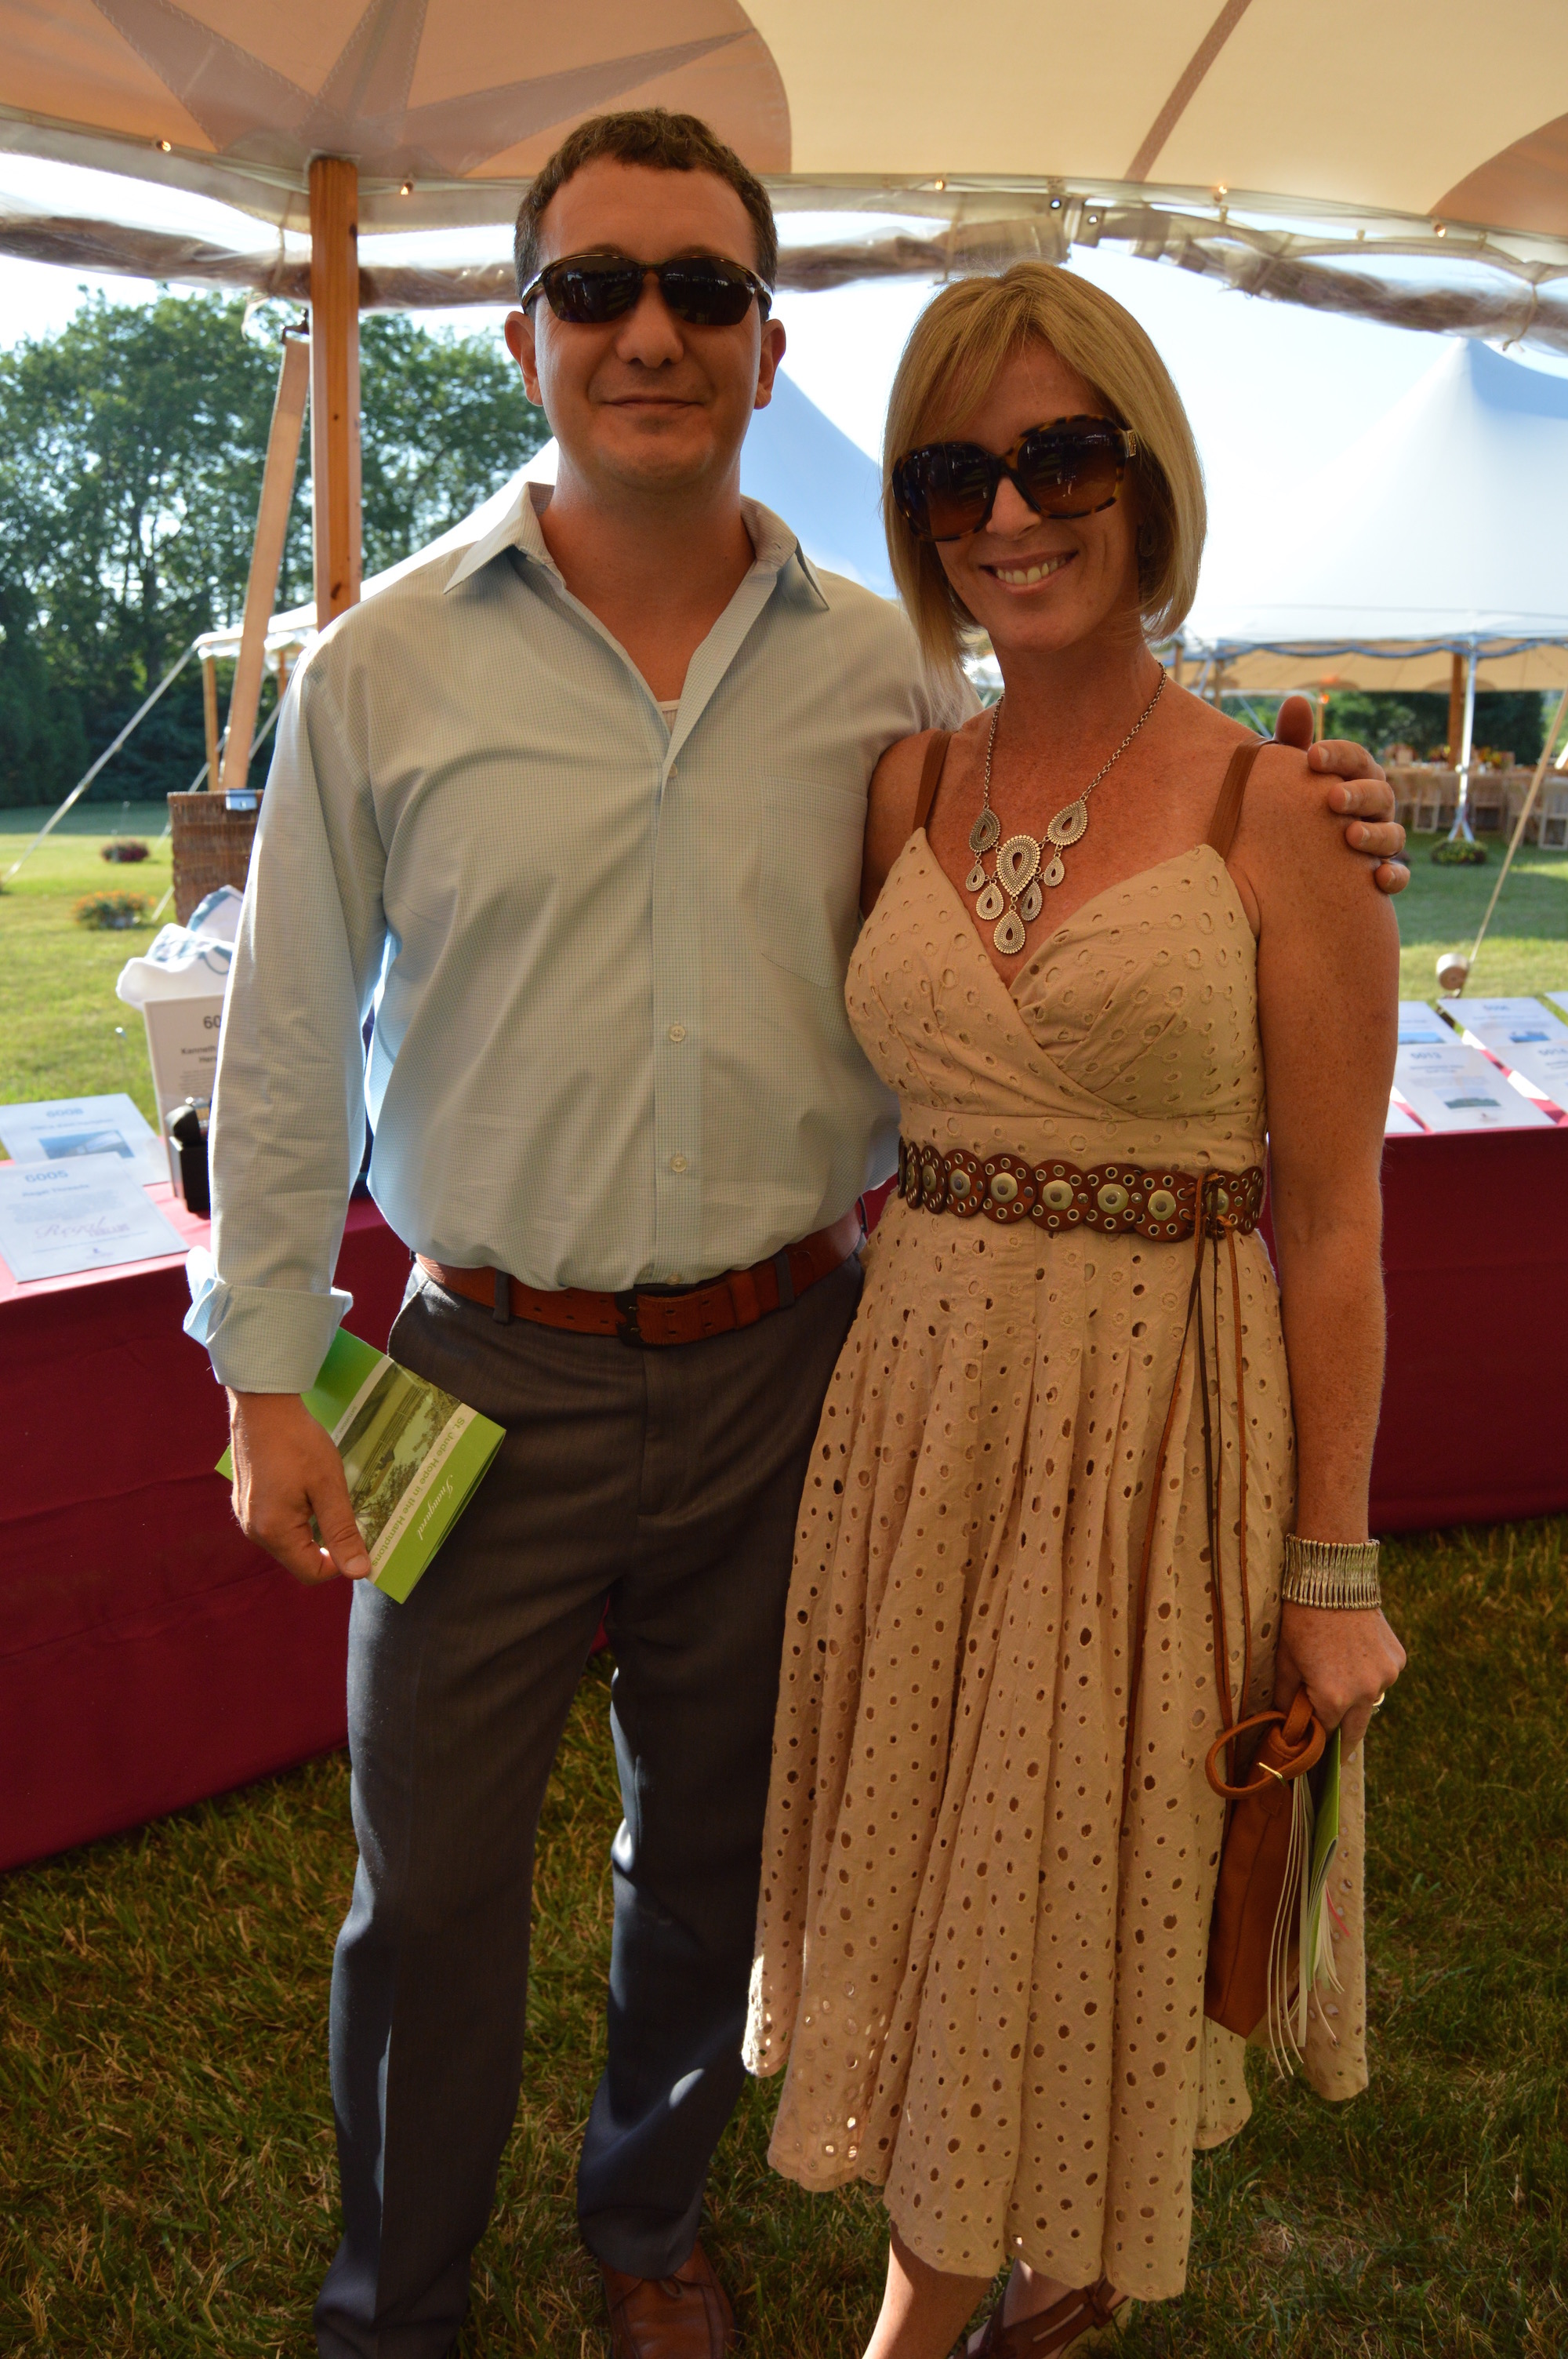 Bill and Brook Cracco at the St. Jude Children's Research Hospital fundraiser, Hope in the Hamptons. image: vanessa pinto